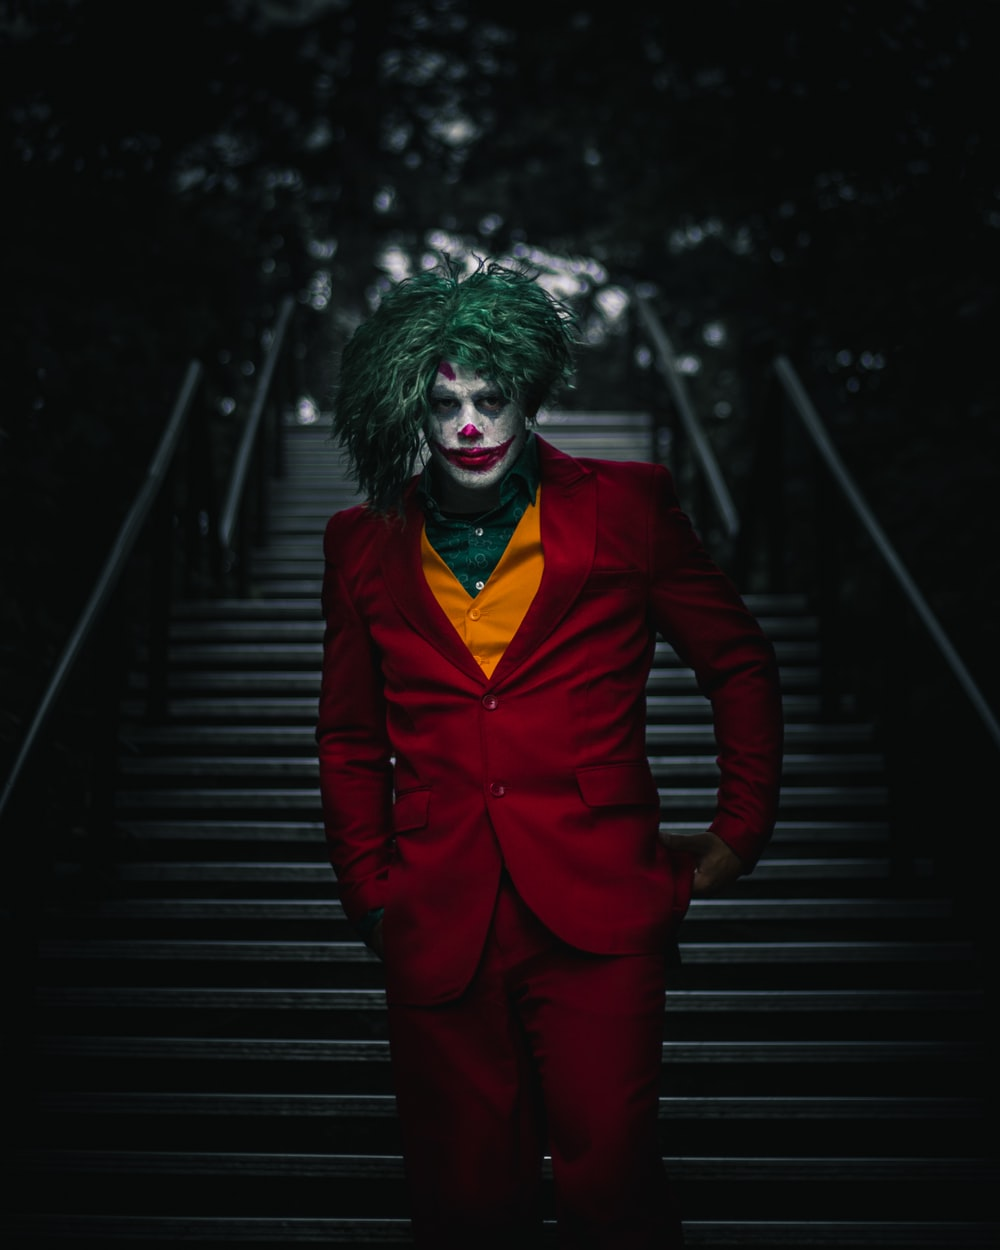 person wearing The Joker costume